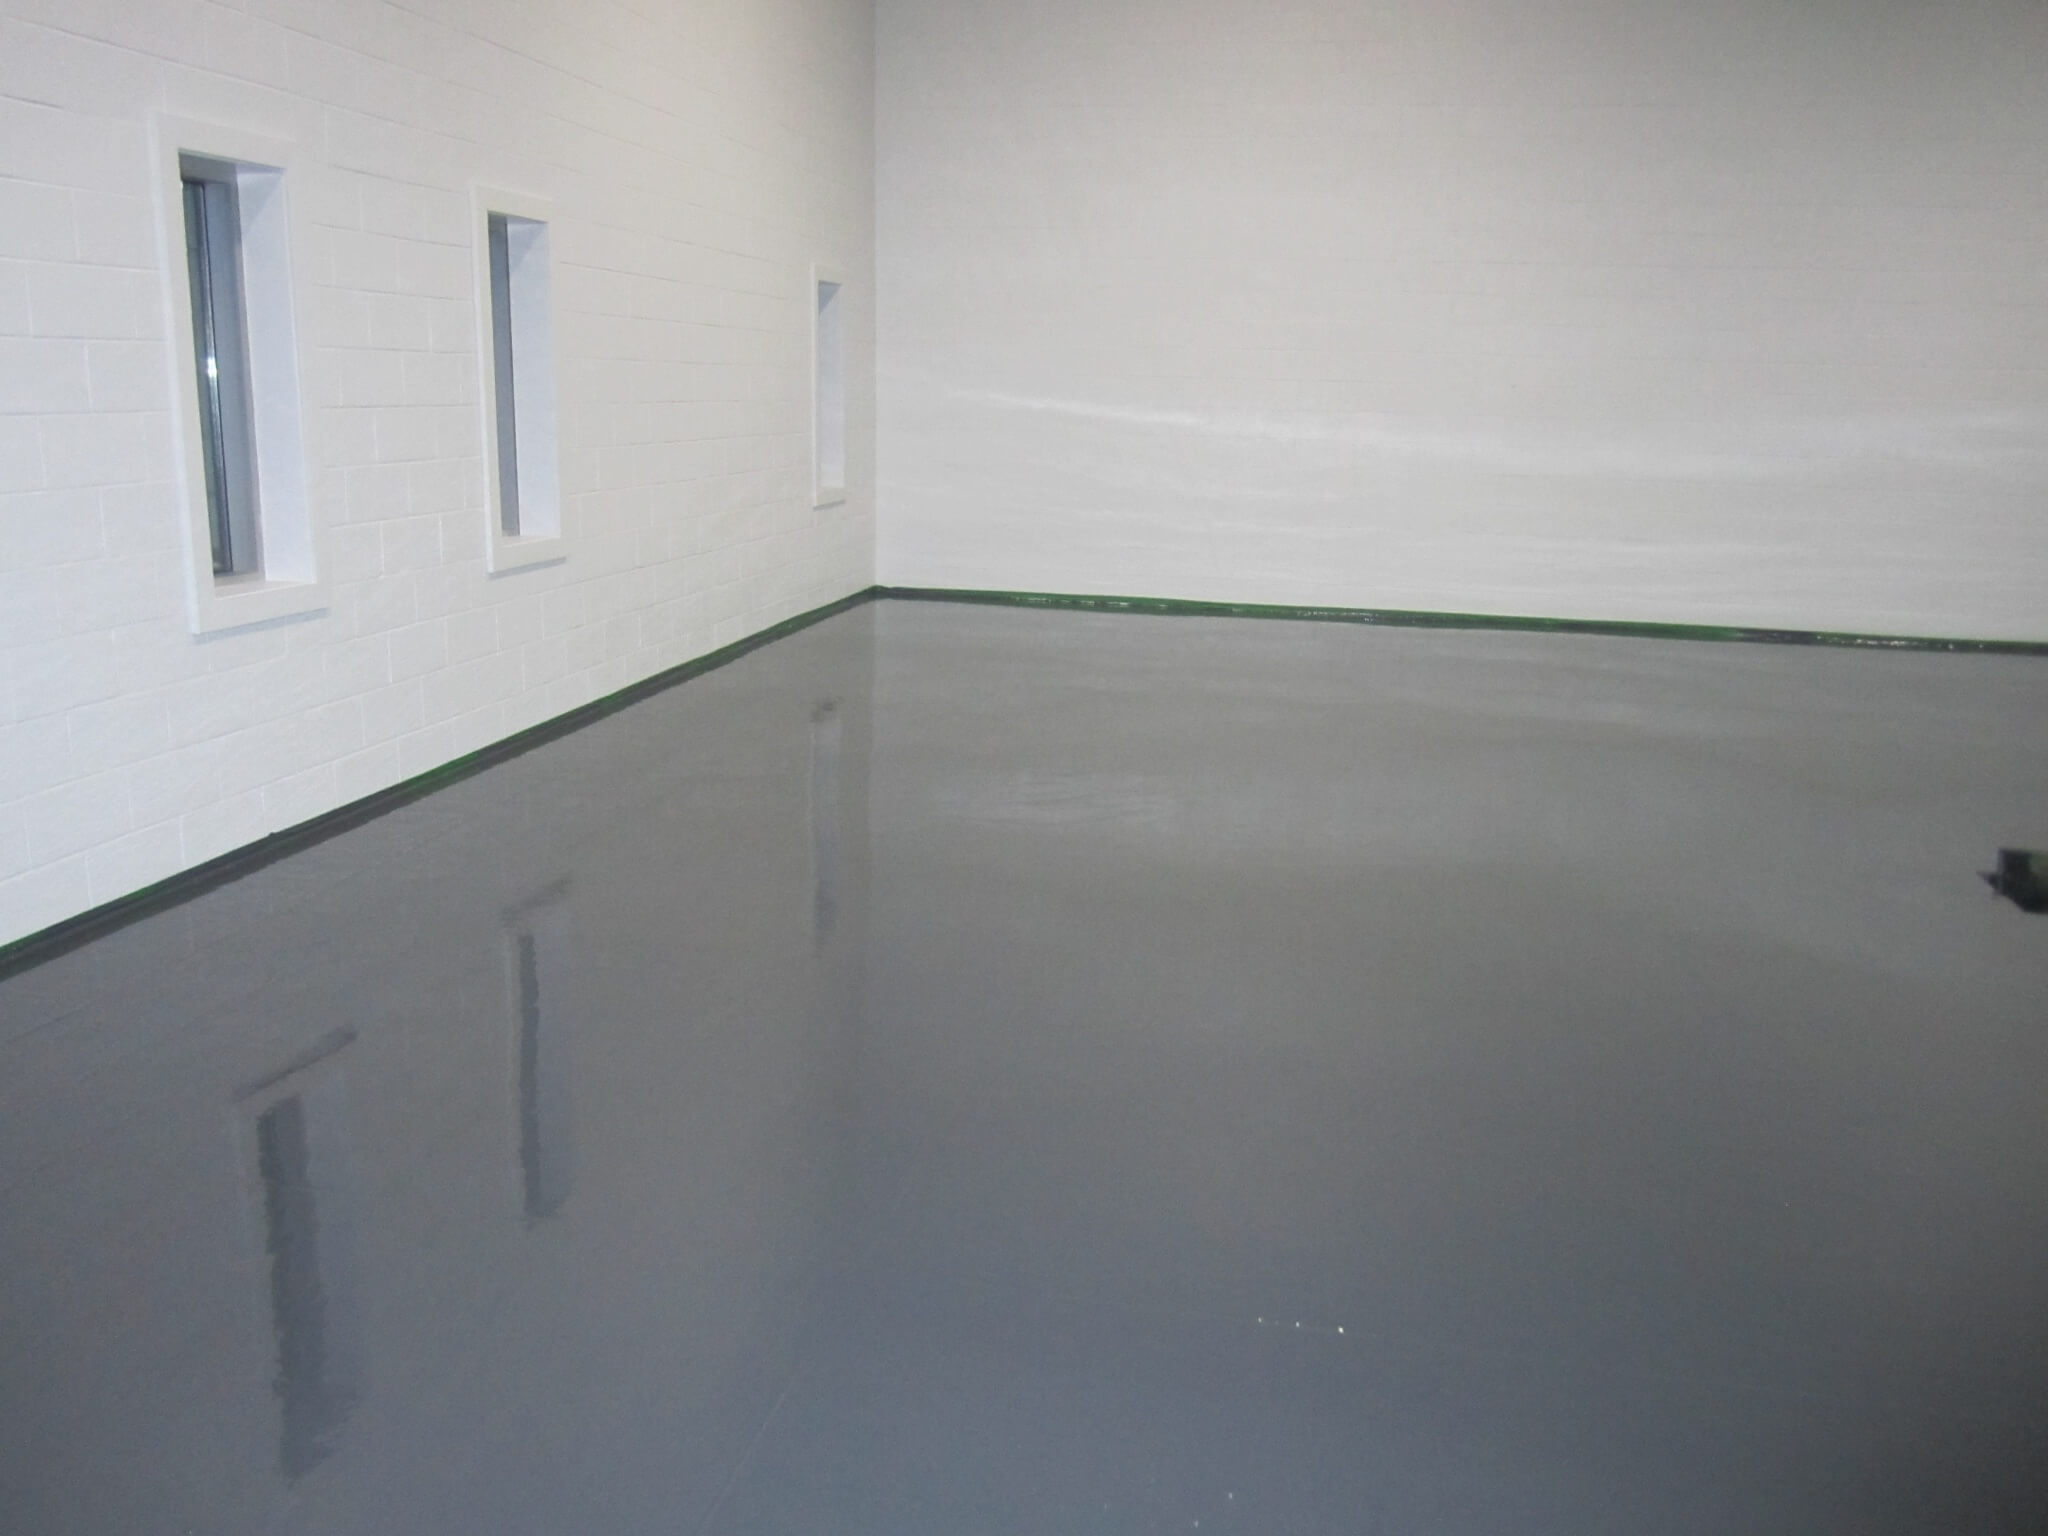 epoxy coating - epoxy garage floor coating, floor expoxy coating for concrete deck coatings Montreal Laval Longueuil Qc